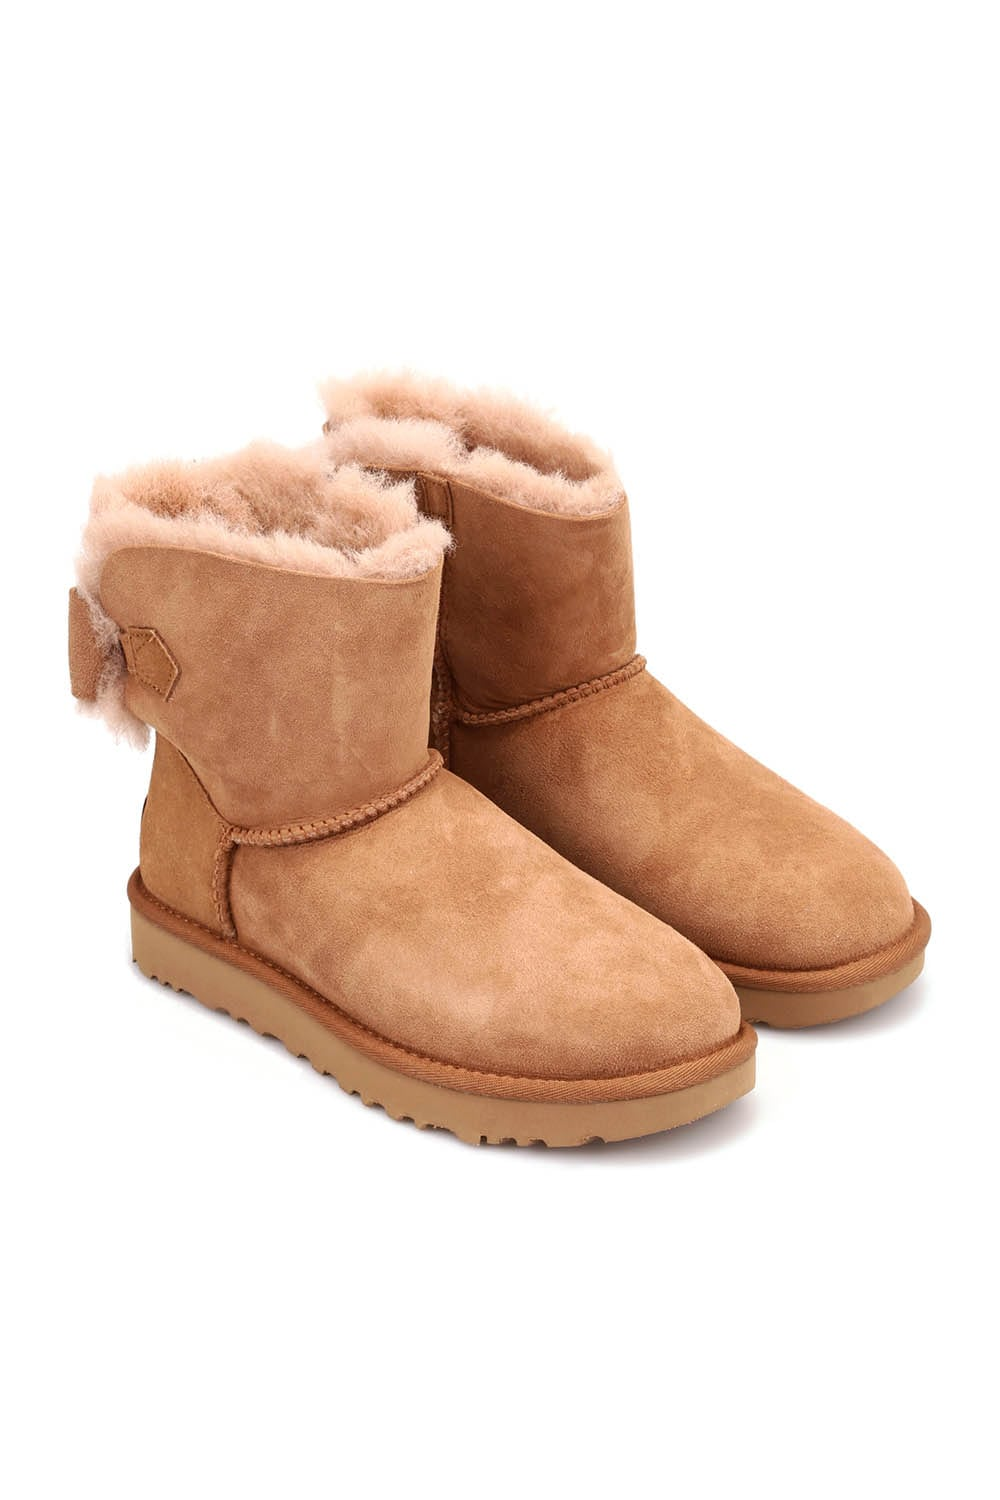 Asos Half Price Ugg Boots Boots Designer Sunglasses Voucher Codes - Designer shades needn't cost a fortune, and if you take advantage of the savings available at Boots Designer Sunglasses, you could snap up a new pair, at a purse pleasing price.